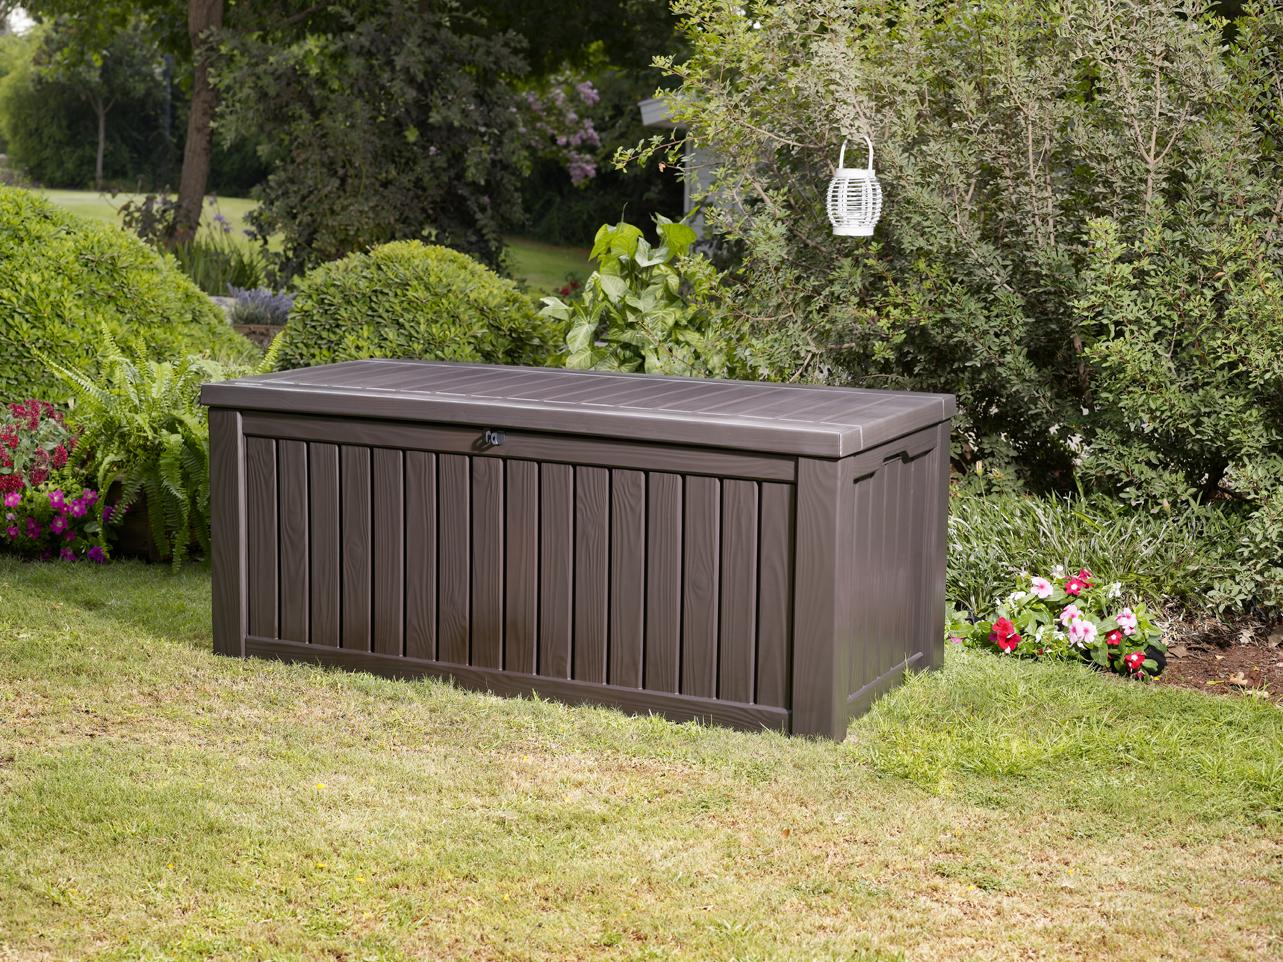 Amazon Com Keter Rockwood Plastic Deck Storage Container